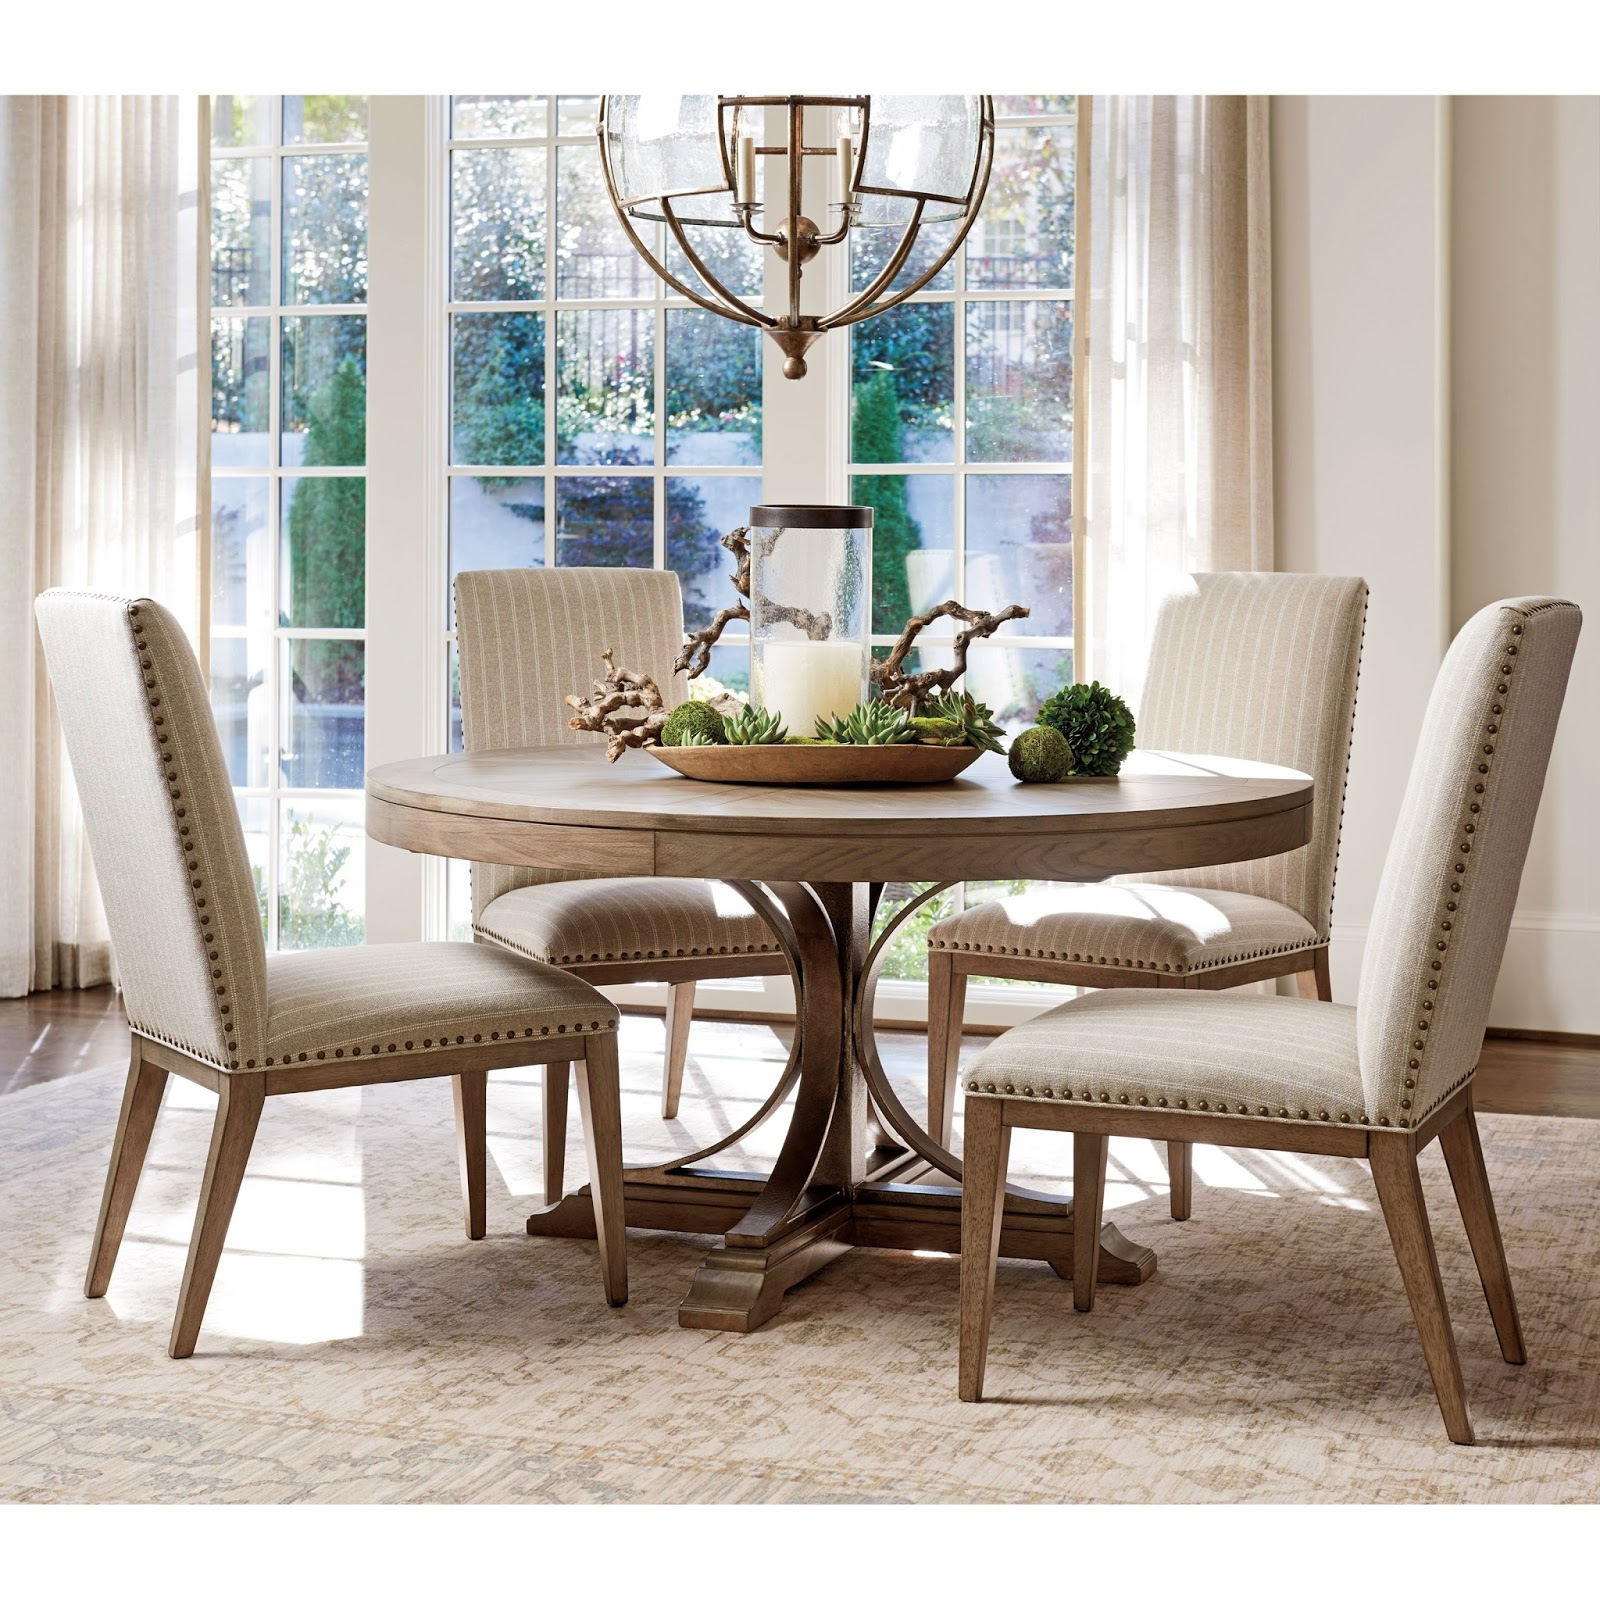 Tommy Bahama Dining Room Furniture: Baer's Custom Furniture: New Collections At Baer's